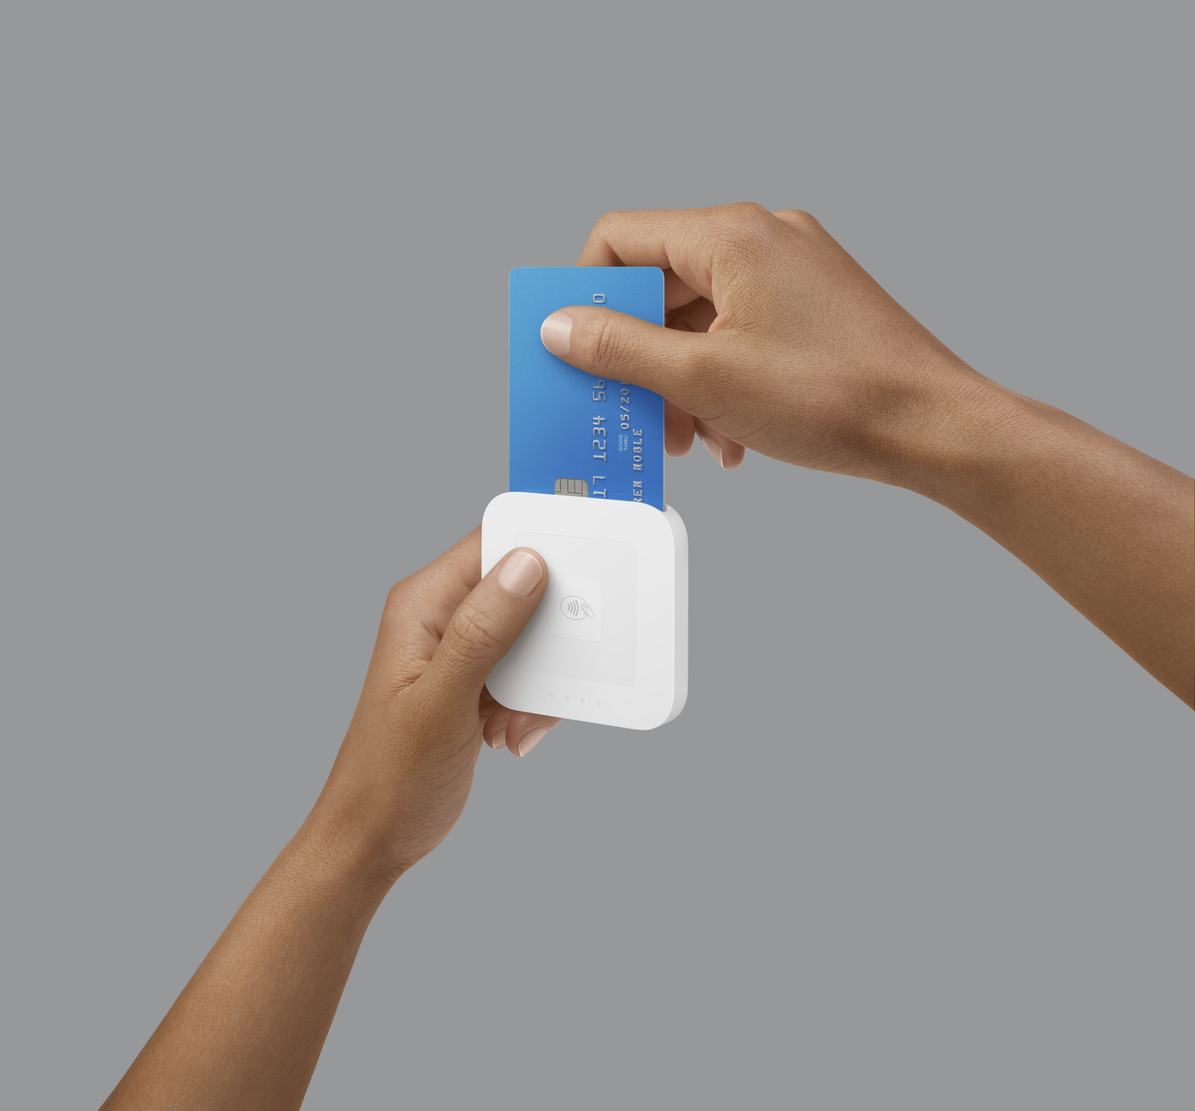 Square's EMV and NFC card reader